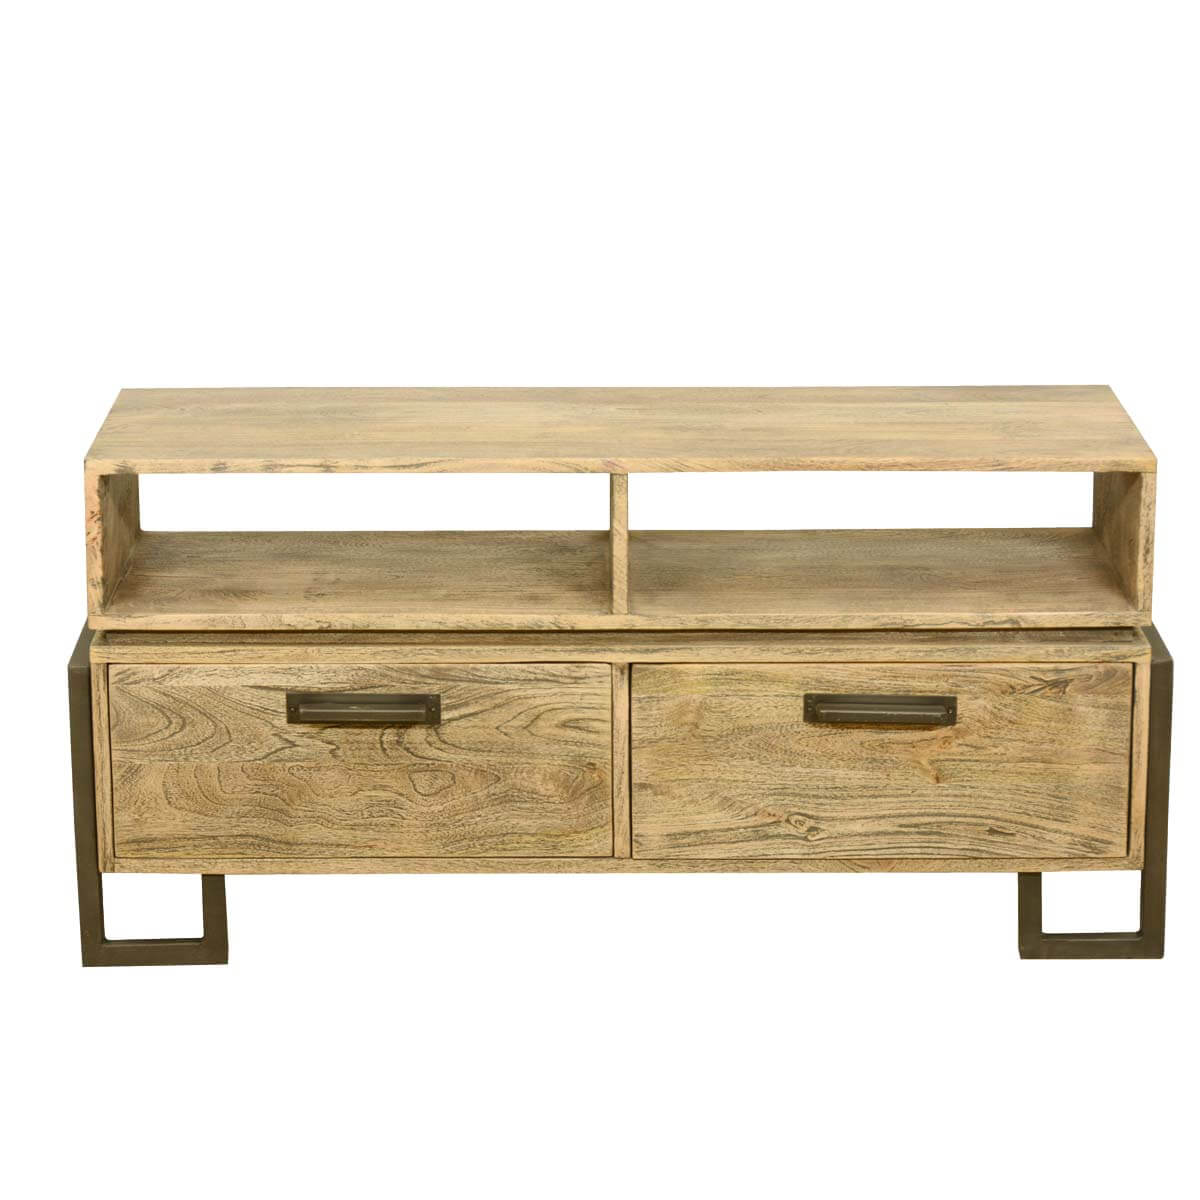 80 Wood Rustic Tv Stand Console MediaUnique Four Hands